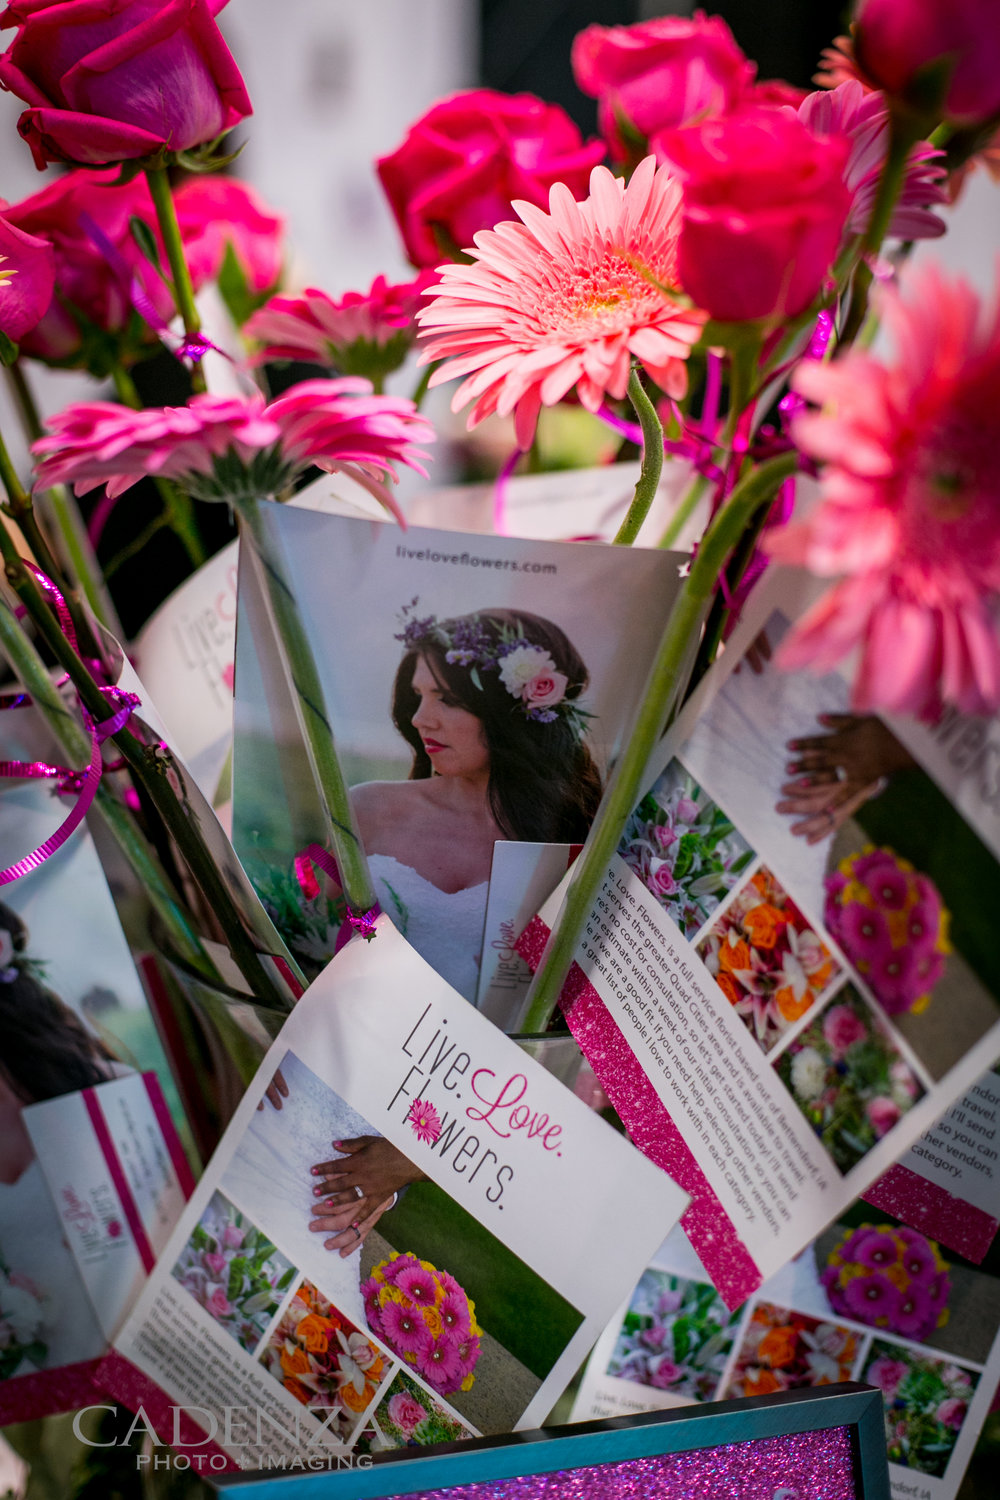 Image by Cadenza Photo Imaging Brochures designed by Leesa Dykstra Designs